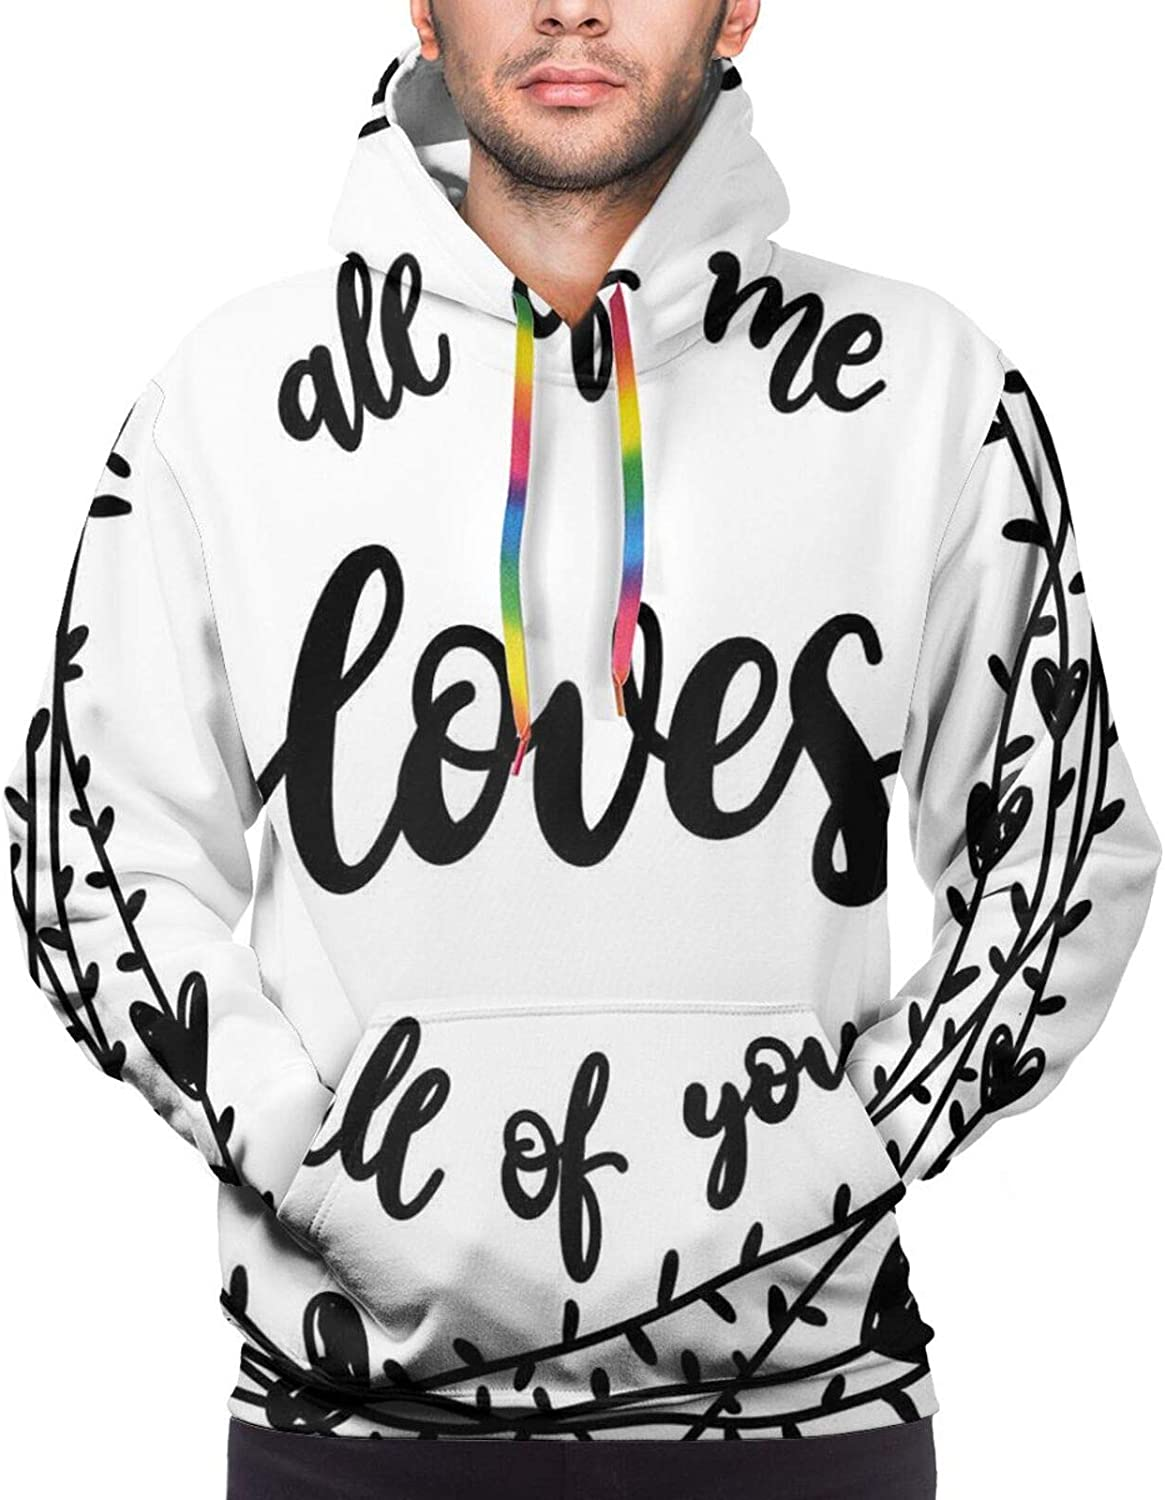 Men's Hoodies Sweatshirts,All of Me Loves All of You Quote in A Wreath with Hearts Sketch Graphic Art